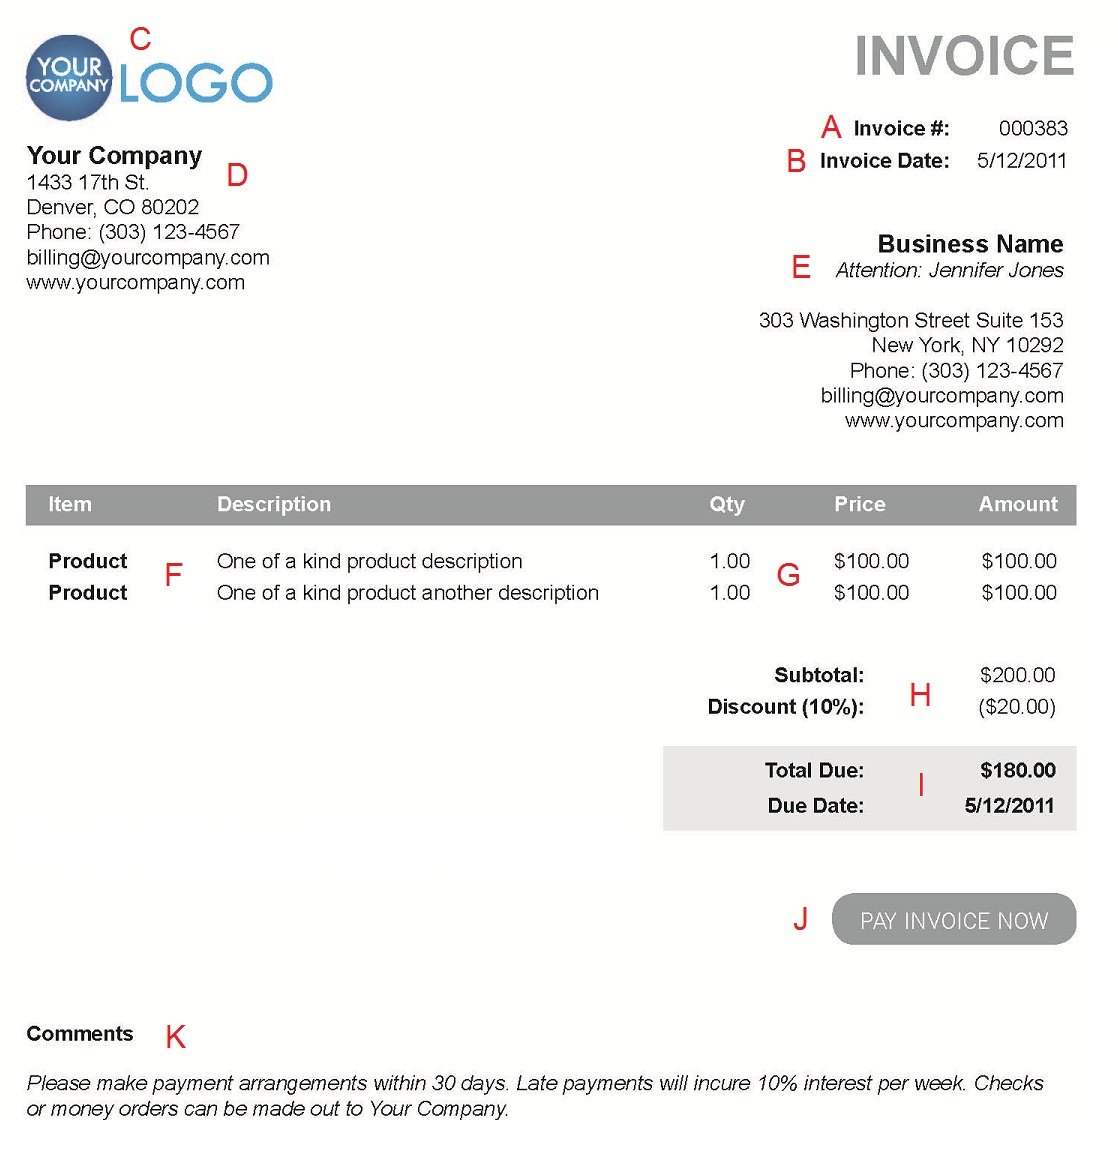 Soulfulpowerus  Winsome The  Different Sections Of An Electronic Payment Invoice With Licious A  With Enchanting Canadian Invoice Template Also Invoicing Clerk In Addition Vat Invoice Template And Invoice Number Example As Well As Invoice Receipt Template Word Additionally Ups Commercial Invoice Form From Paysimplecom With Soulfulpowerus  Licious The  Different Sections Of An Electronic Payment Invoice With Enchanting A  And Winsome Canadian Invoice Template Also Invoicing Clerk In Addition Vat Invoice Template From Paysimplecom